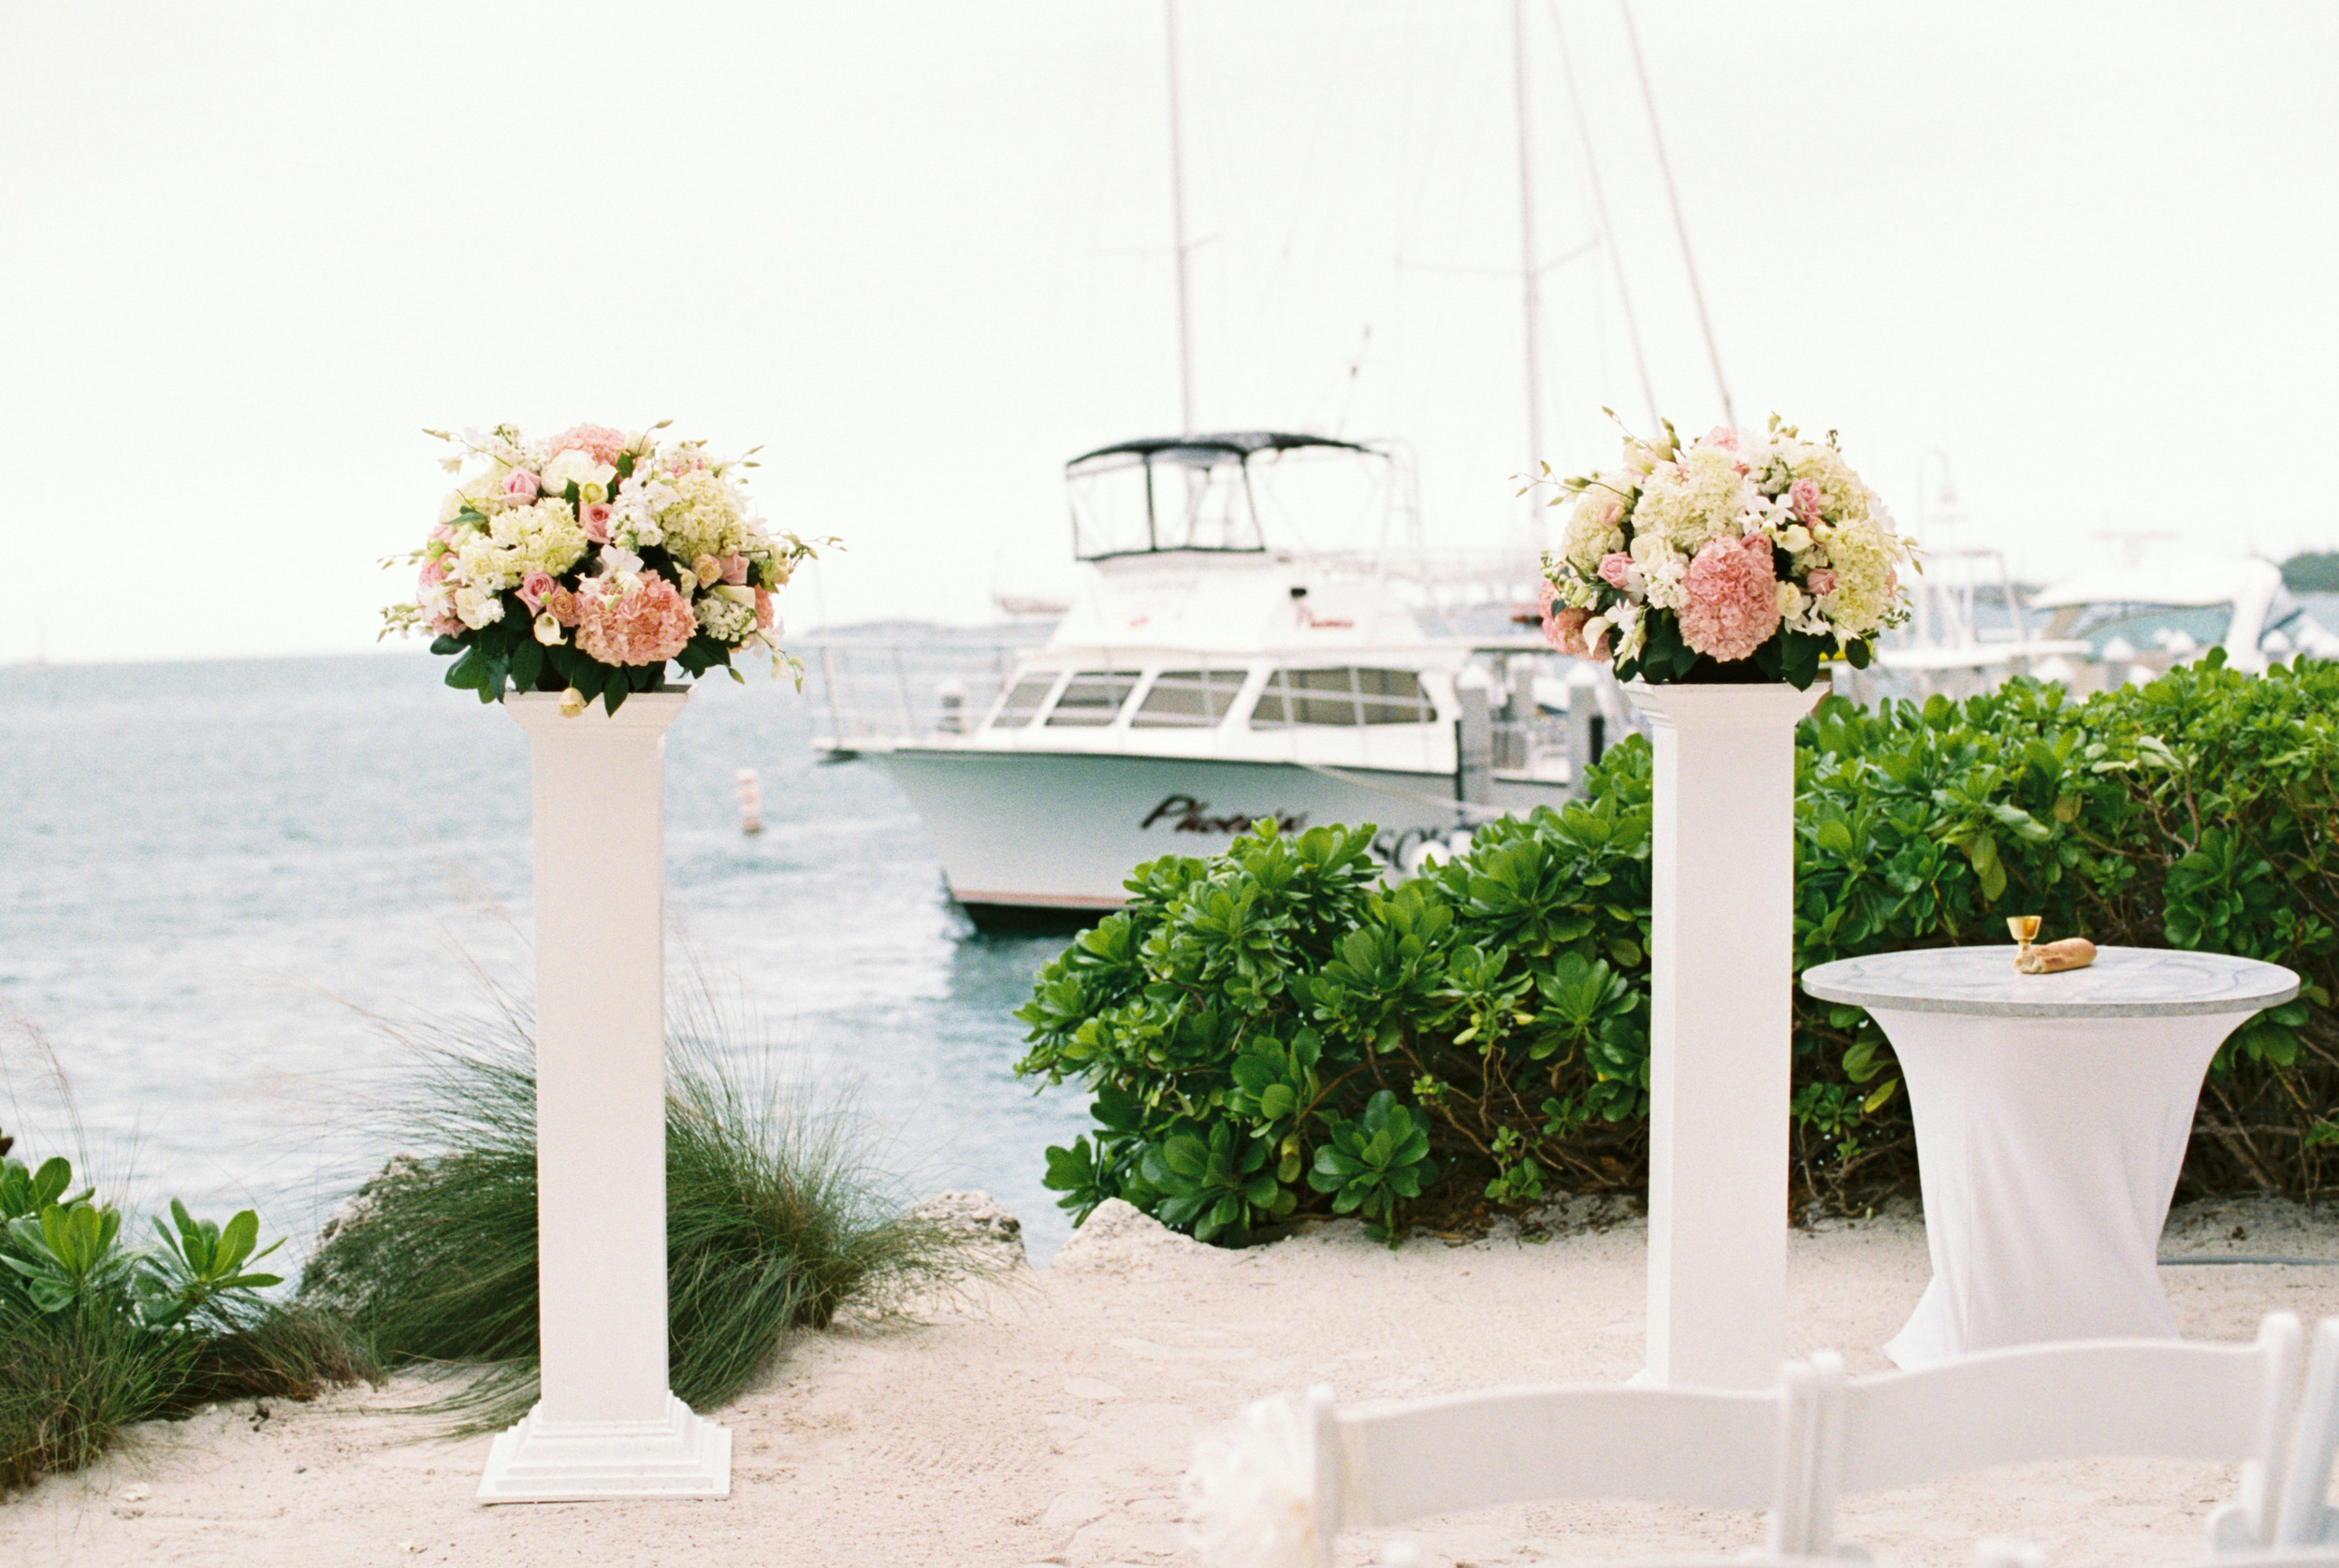 Key West Florida Wedding Film Photographer Photovision Chicago Wedding Photographer 15_2.jpg